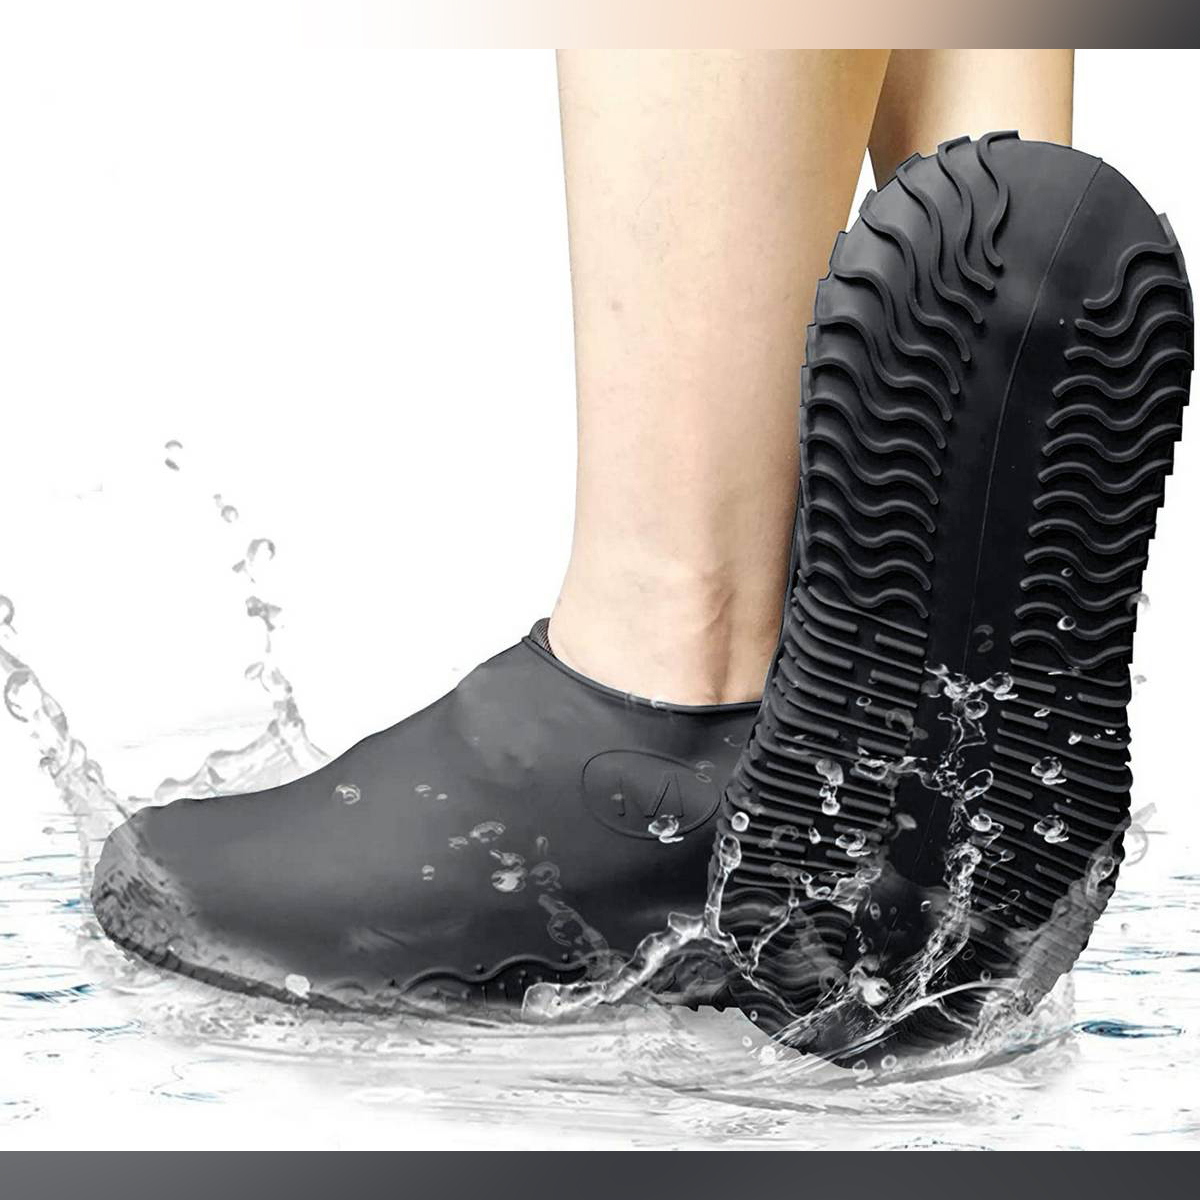 Shoe Cover Silicon Gel Waterproof Rain Shoes Covers Reusable Rubber Elasticity Overshoes Anti-slip for Boots Protector